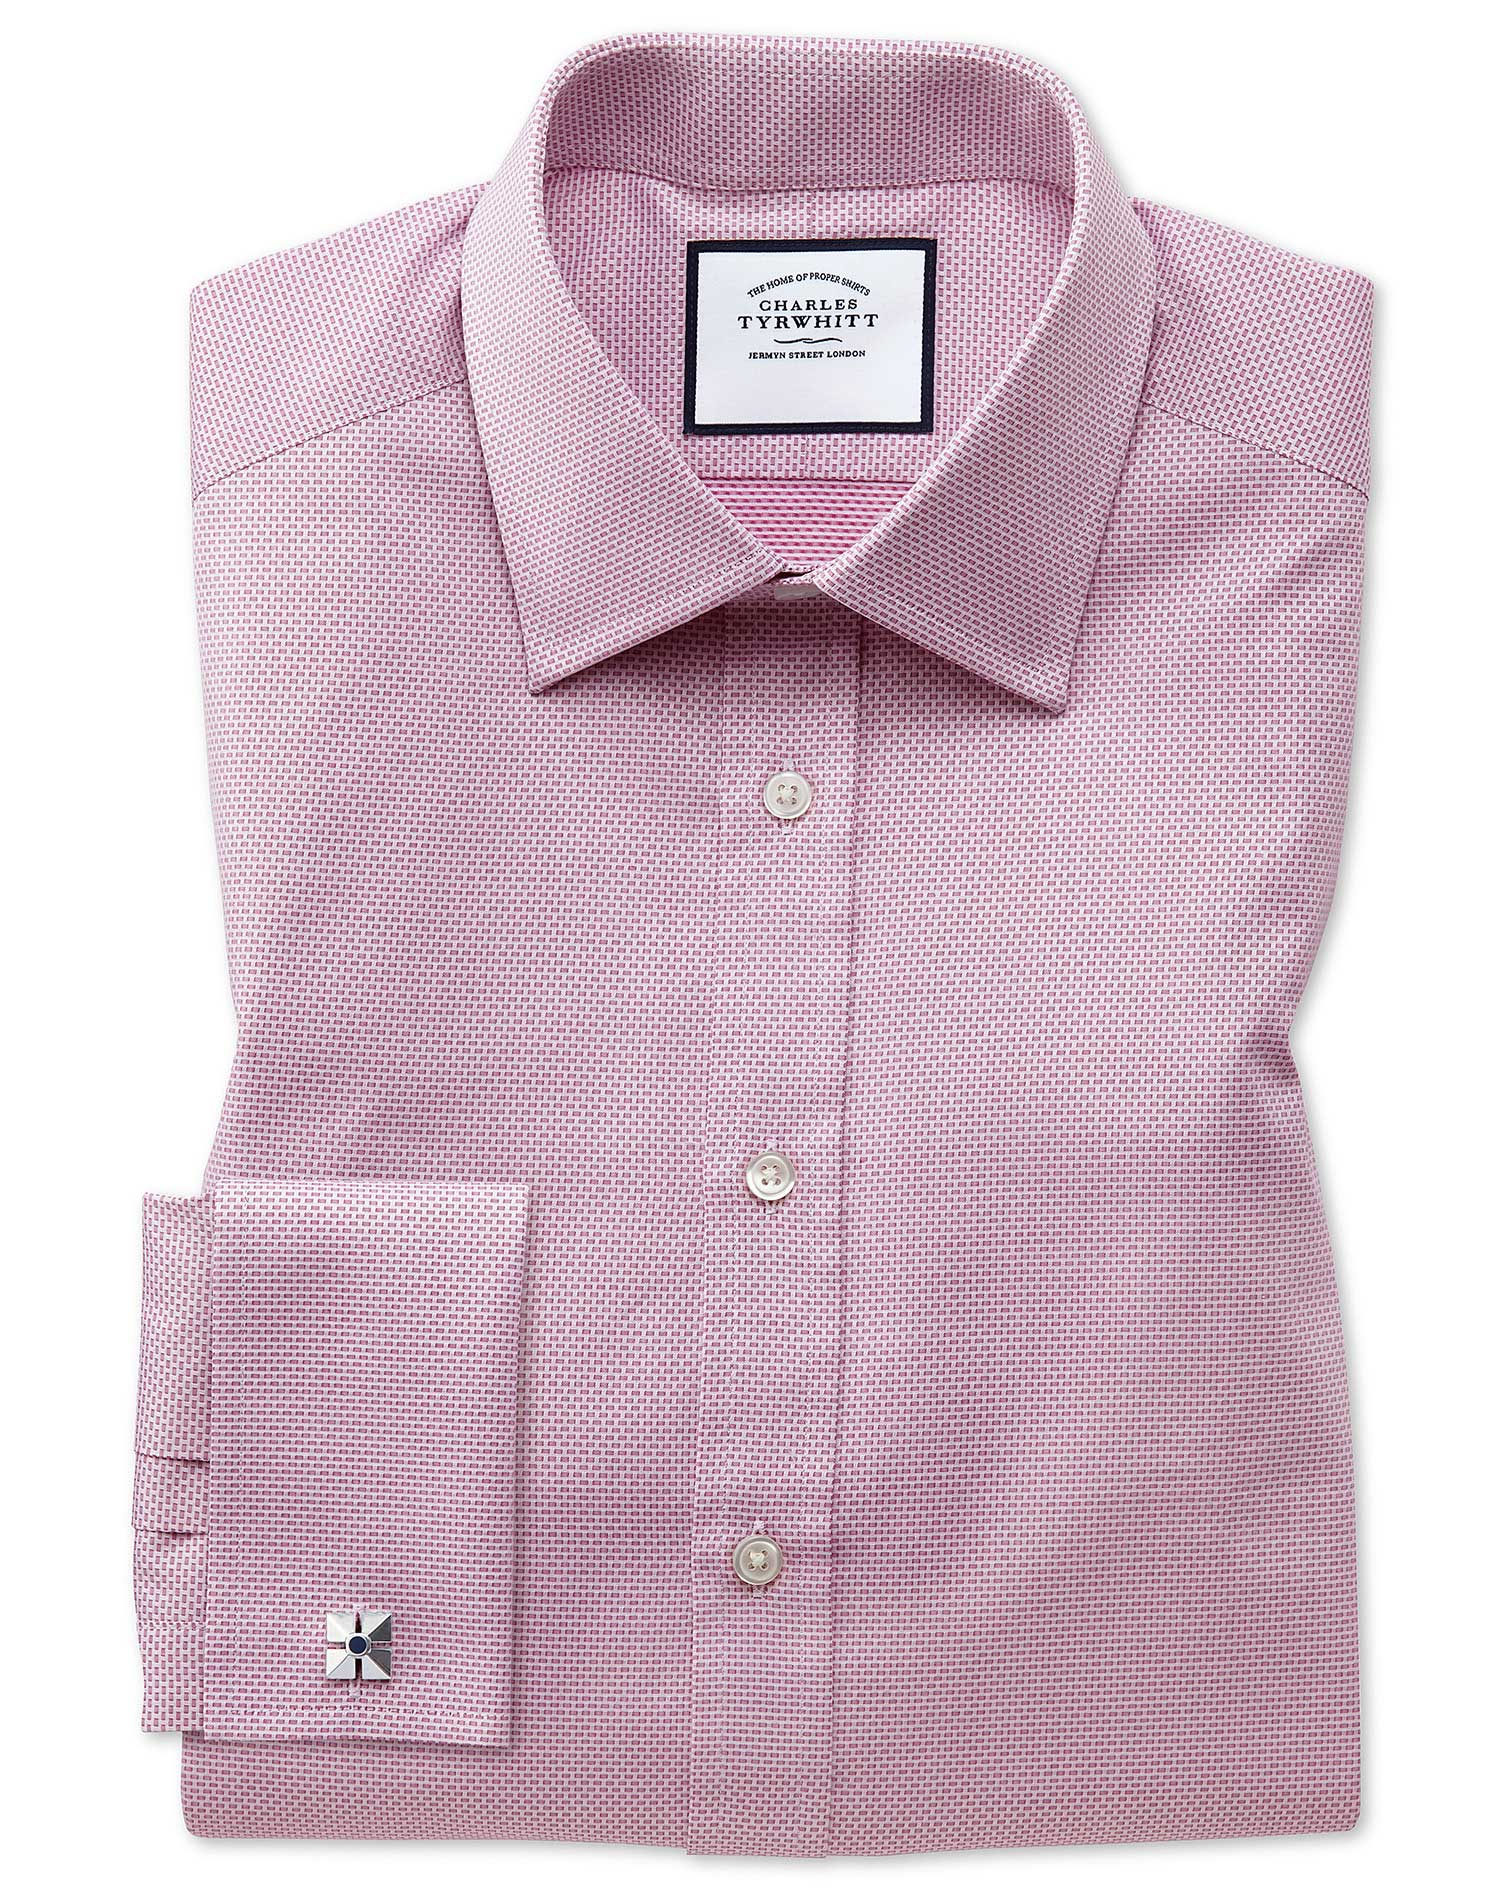 Classic Fit Magenta Cube Weave Egyptian Cotton Formal Shirt Single Cuff Size 16.5/34 by Charles Tyrw